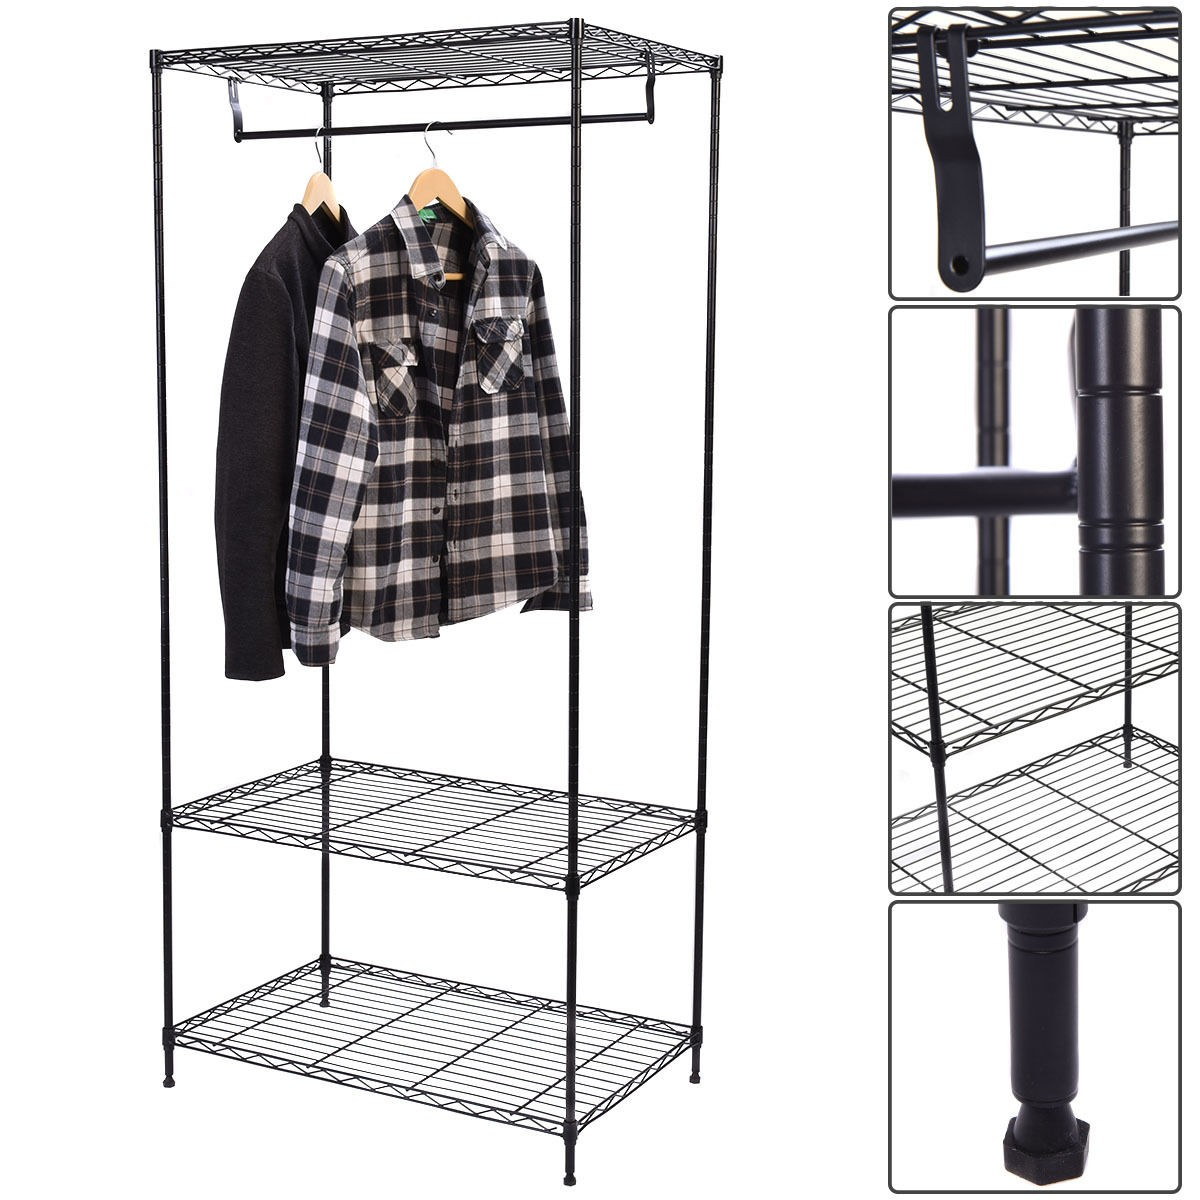 3 tier clothing garment rack hanger shelving wire shelf dress wardrobe us ship ebay. Black Bedroom Furniture Sets. Home Design Ideas